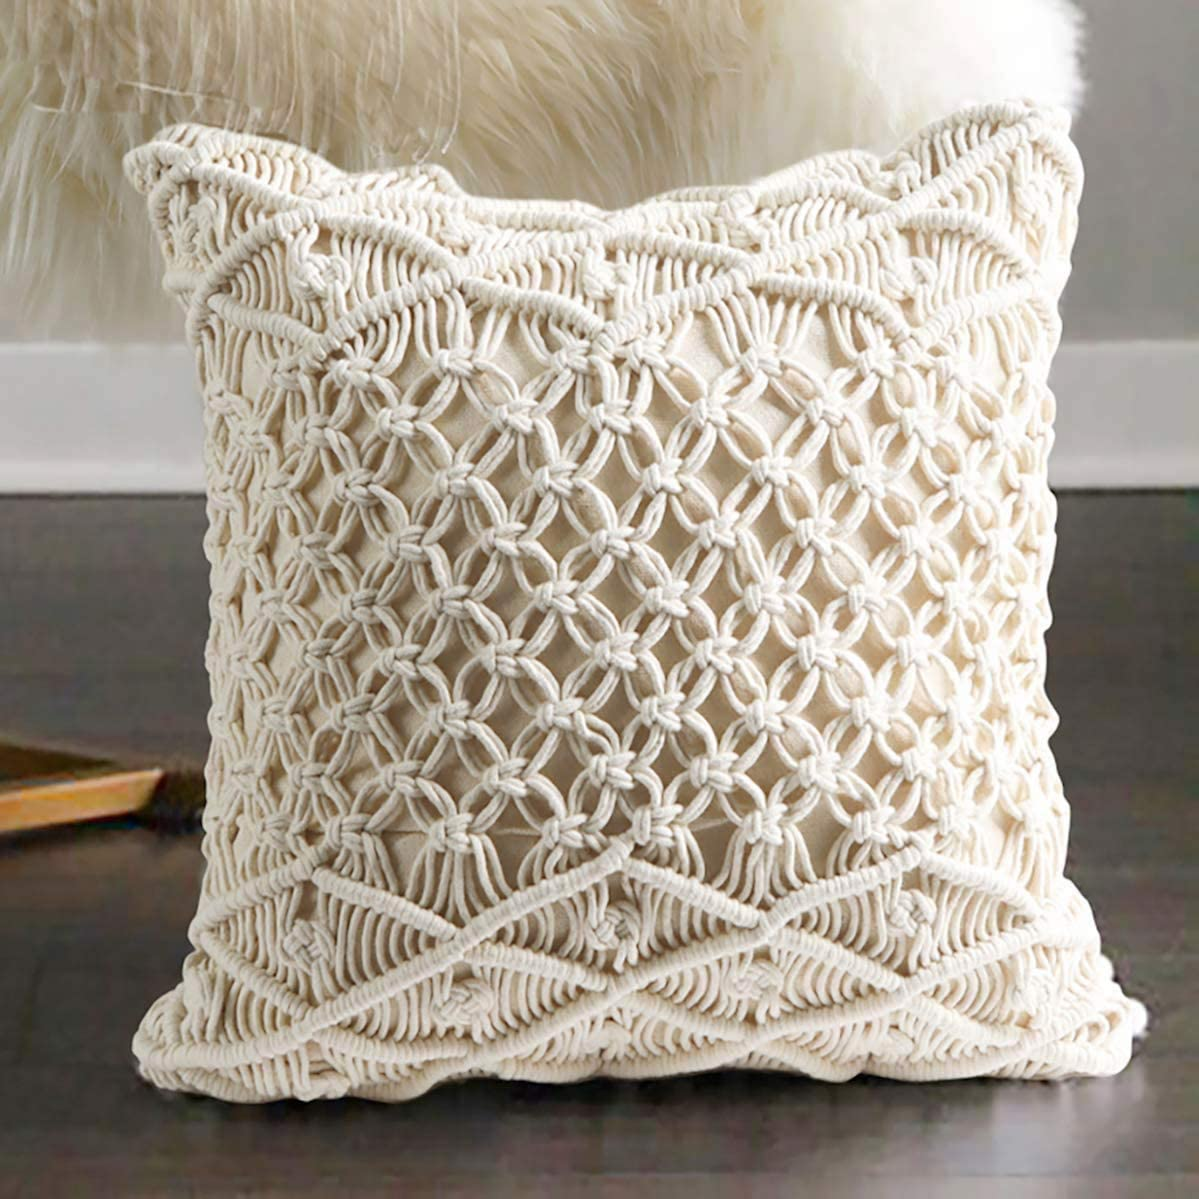 Flber Macrame Pillow Woven Decorative Throw Pillow,15.8 x15.8